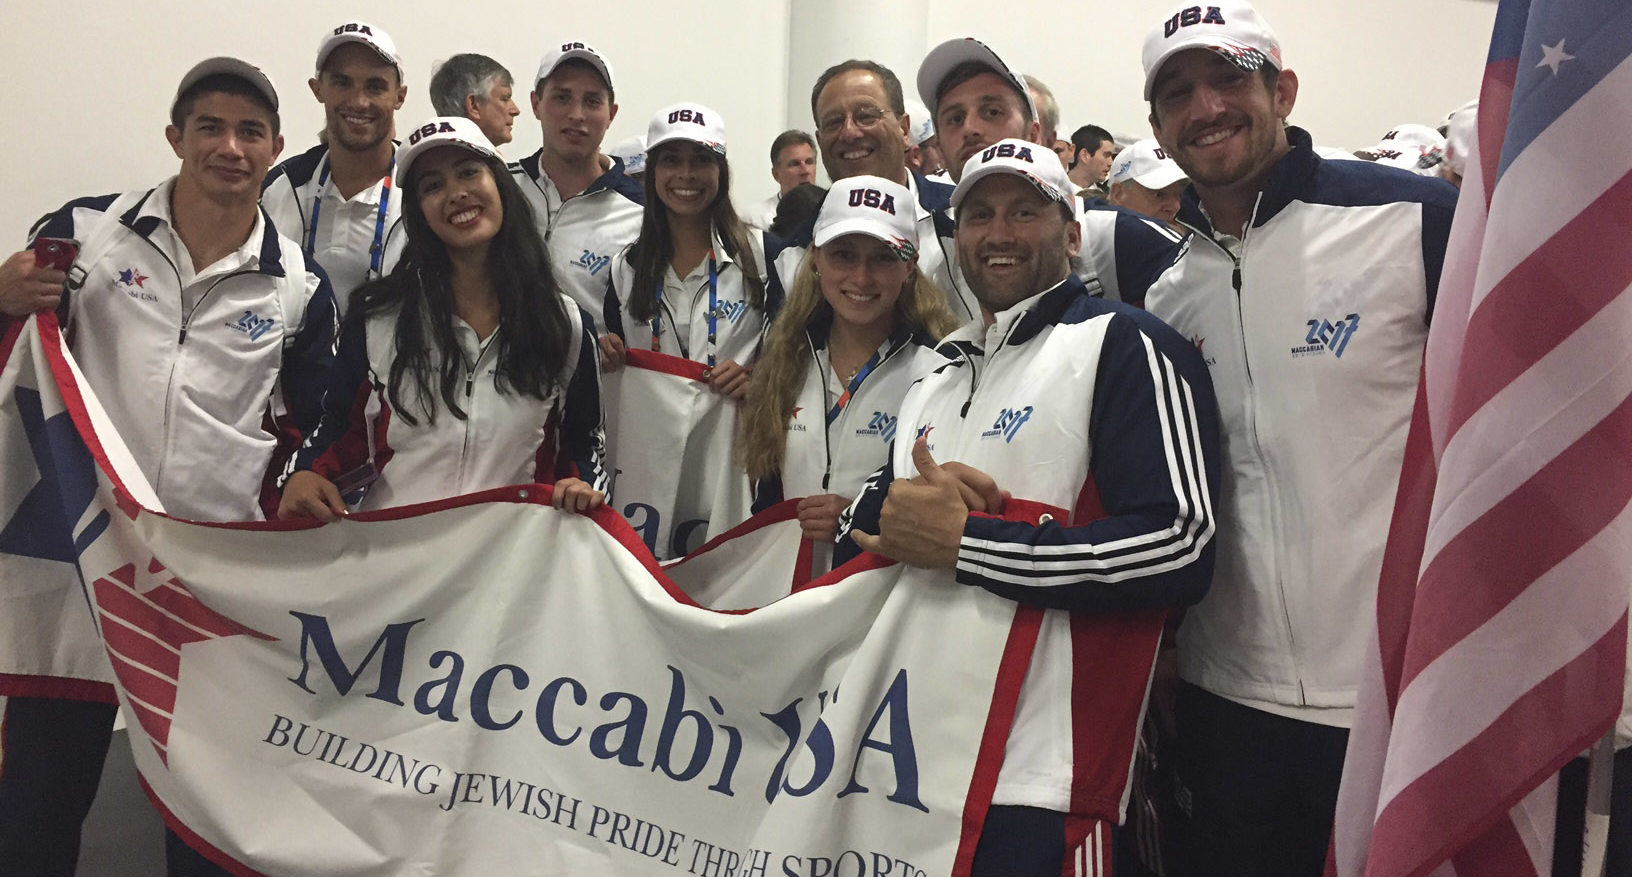 Team USA at the opening ceremonies of the Maccabiah Games, July 6 2017 (Courtesy/Maccabi USA)